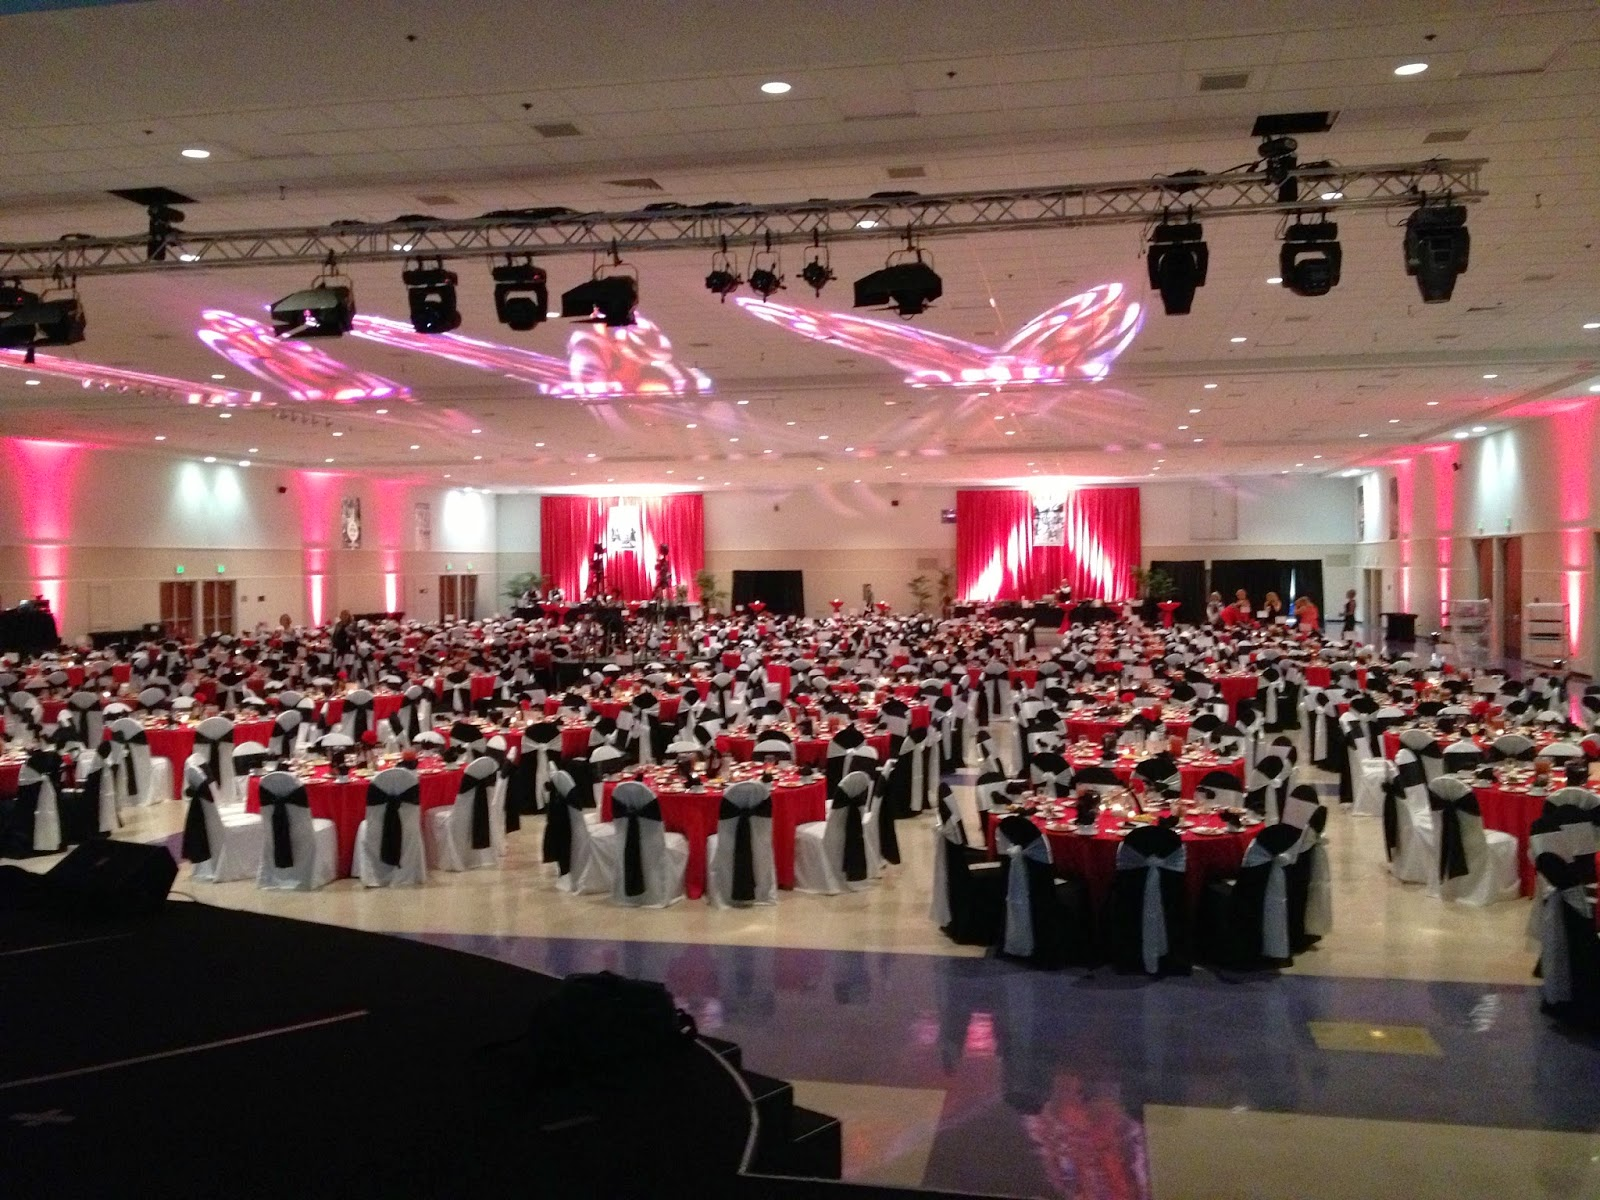 Party People Celebration Company Served As The Event Decor Designer For  This Years Annual Chamber Dinner. Coordinating Linens, Centerpieces And Room  Decor.